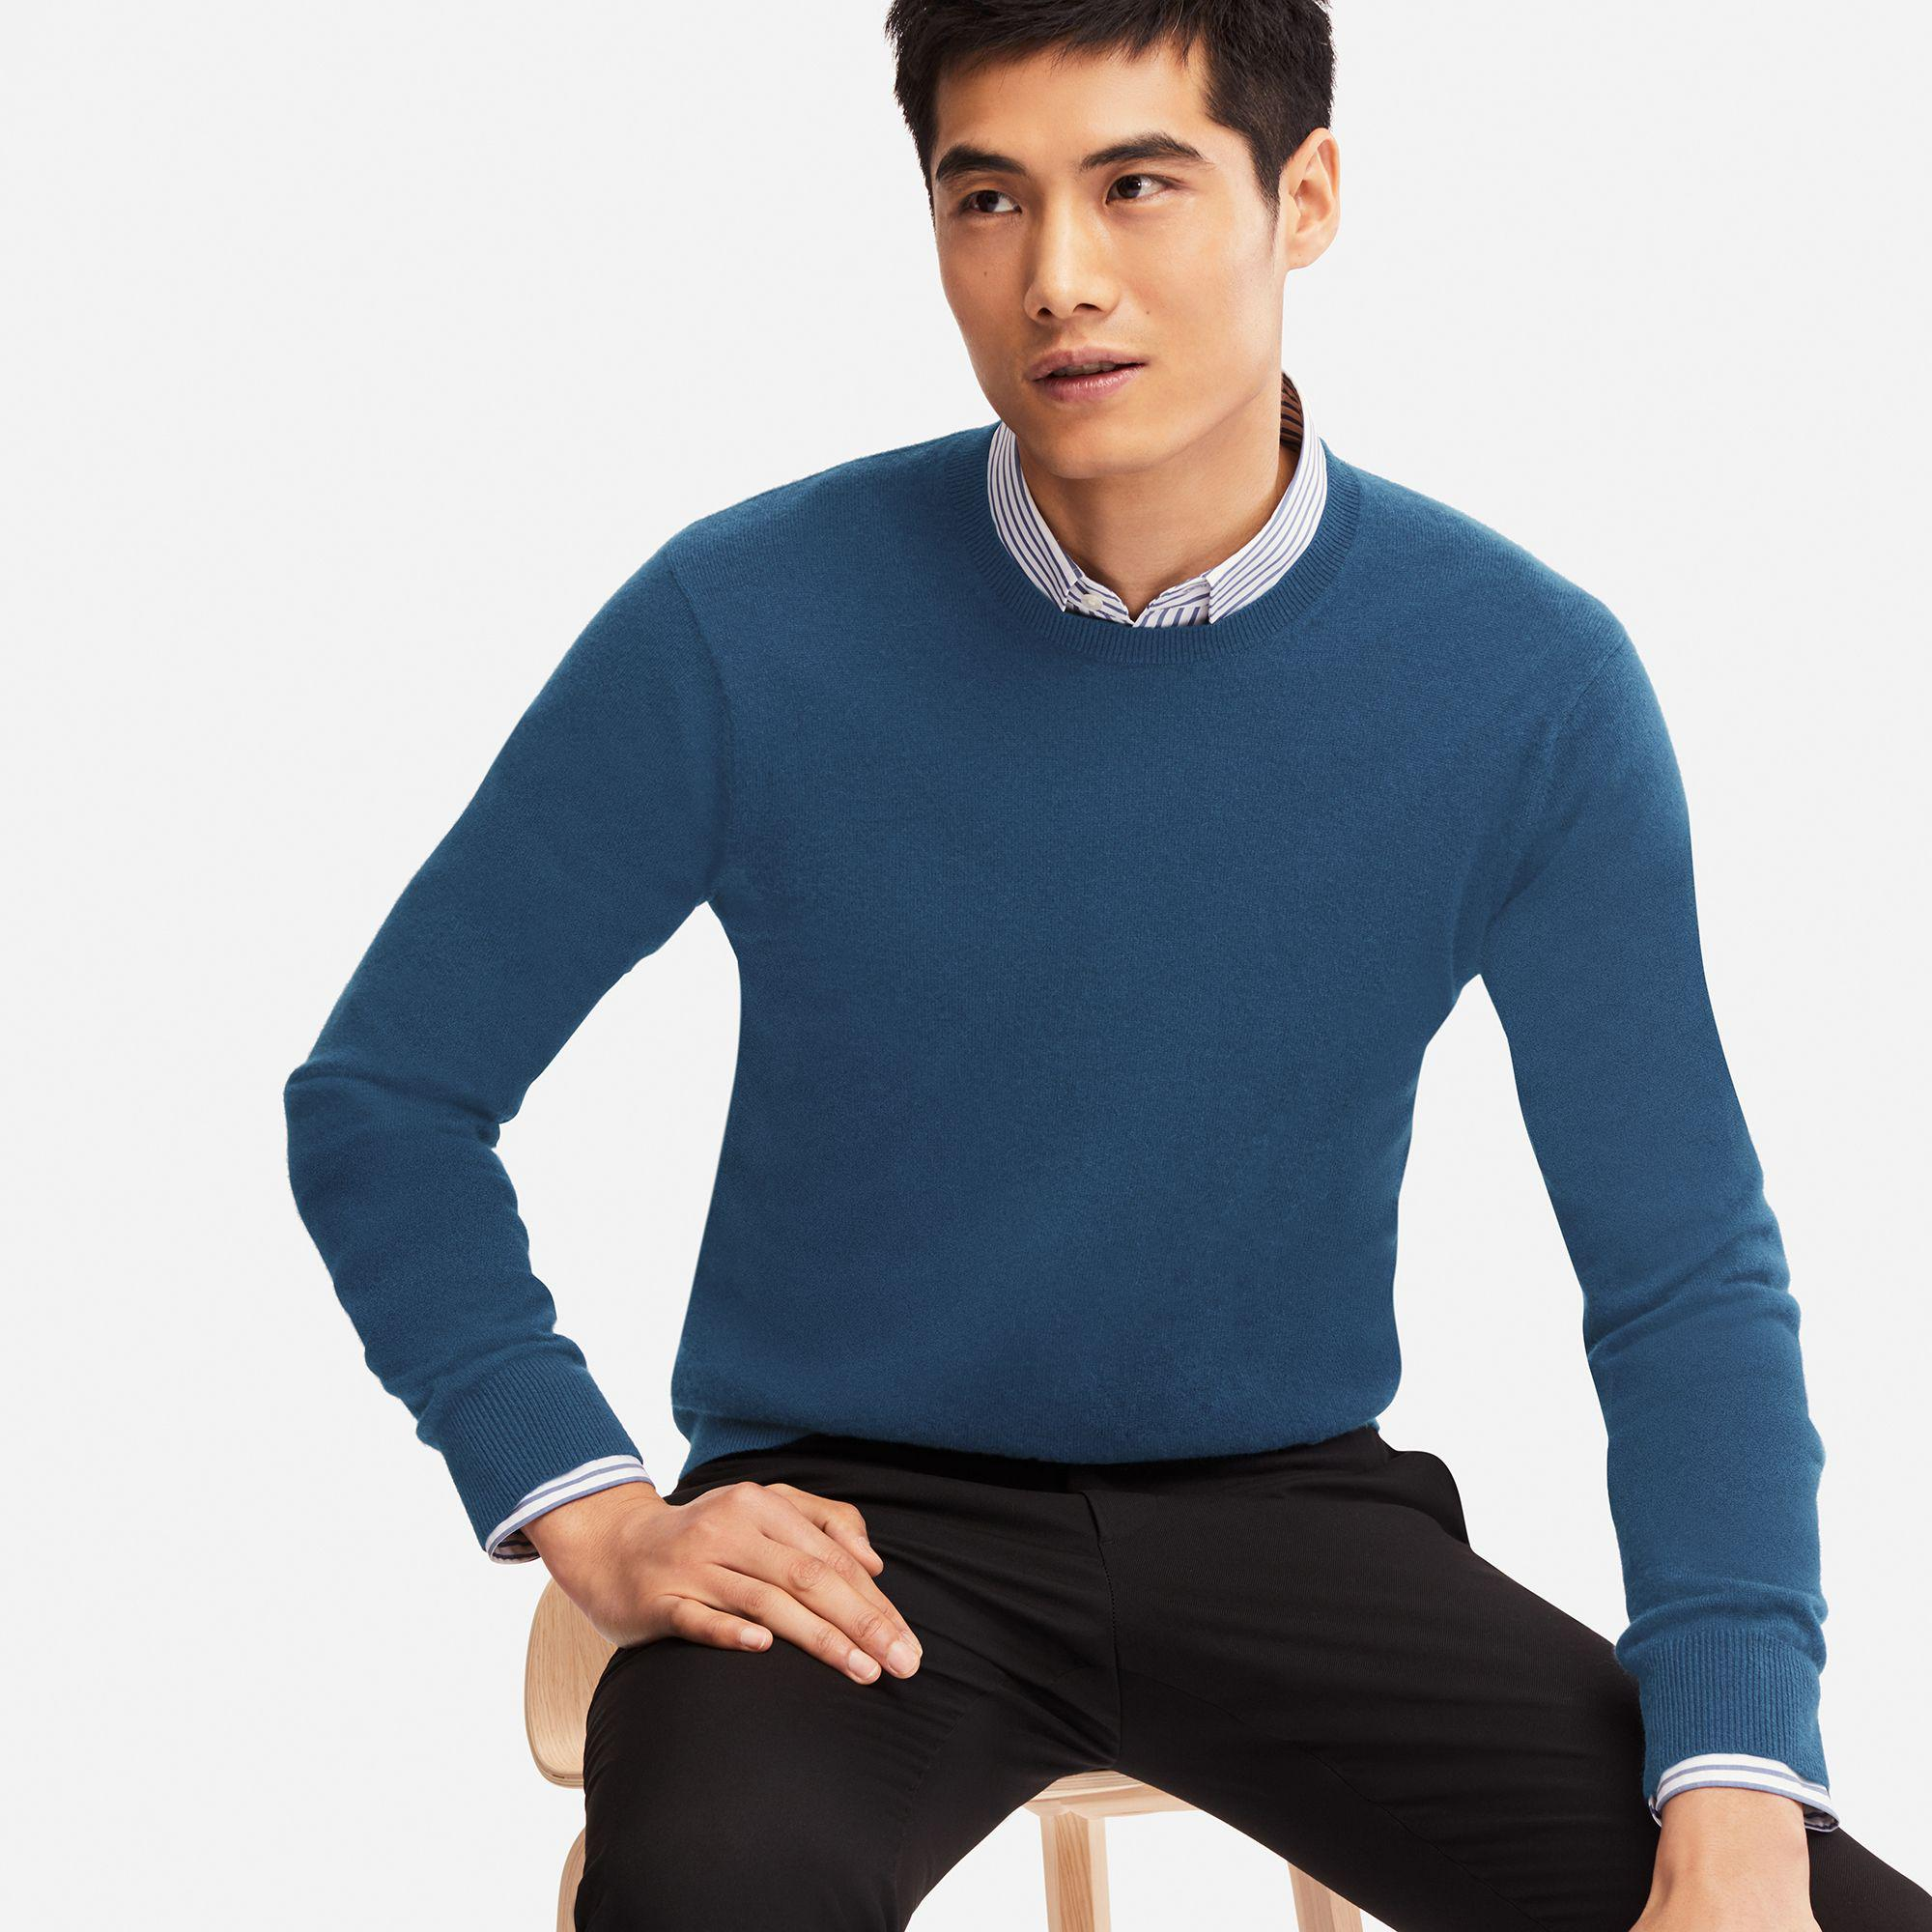 fff005d85 Uniqlo Cashmere Crew Neck Long Sleeved Jumper in Blue for Men - Save ...